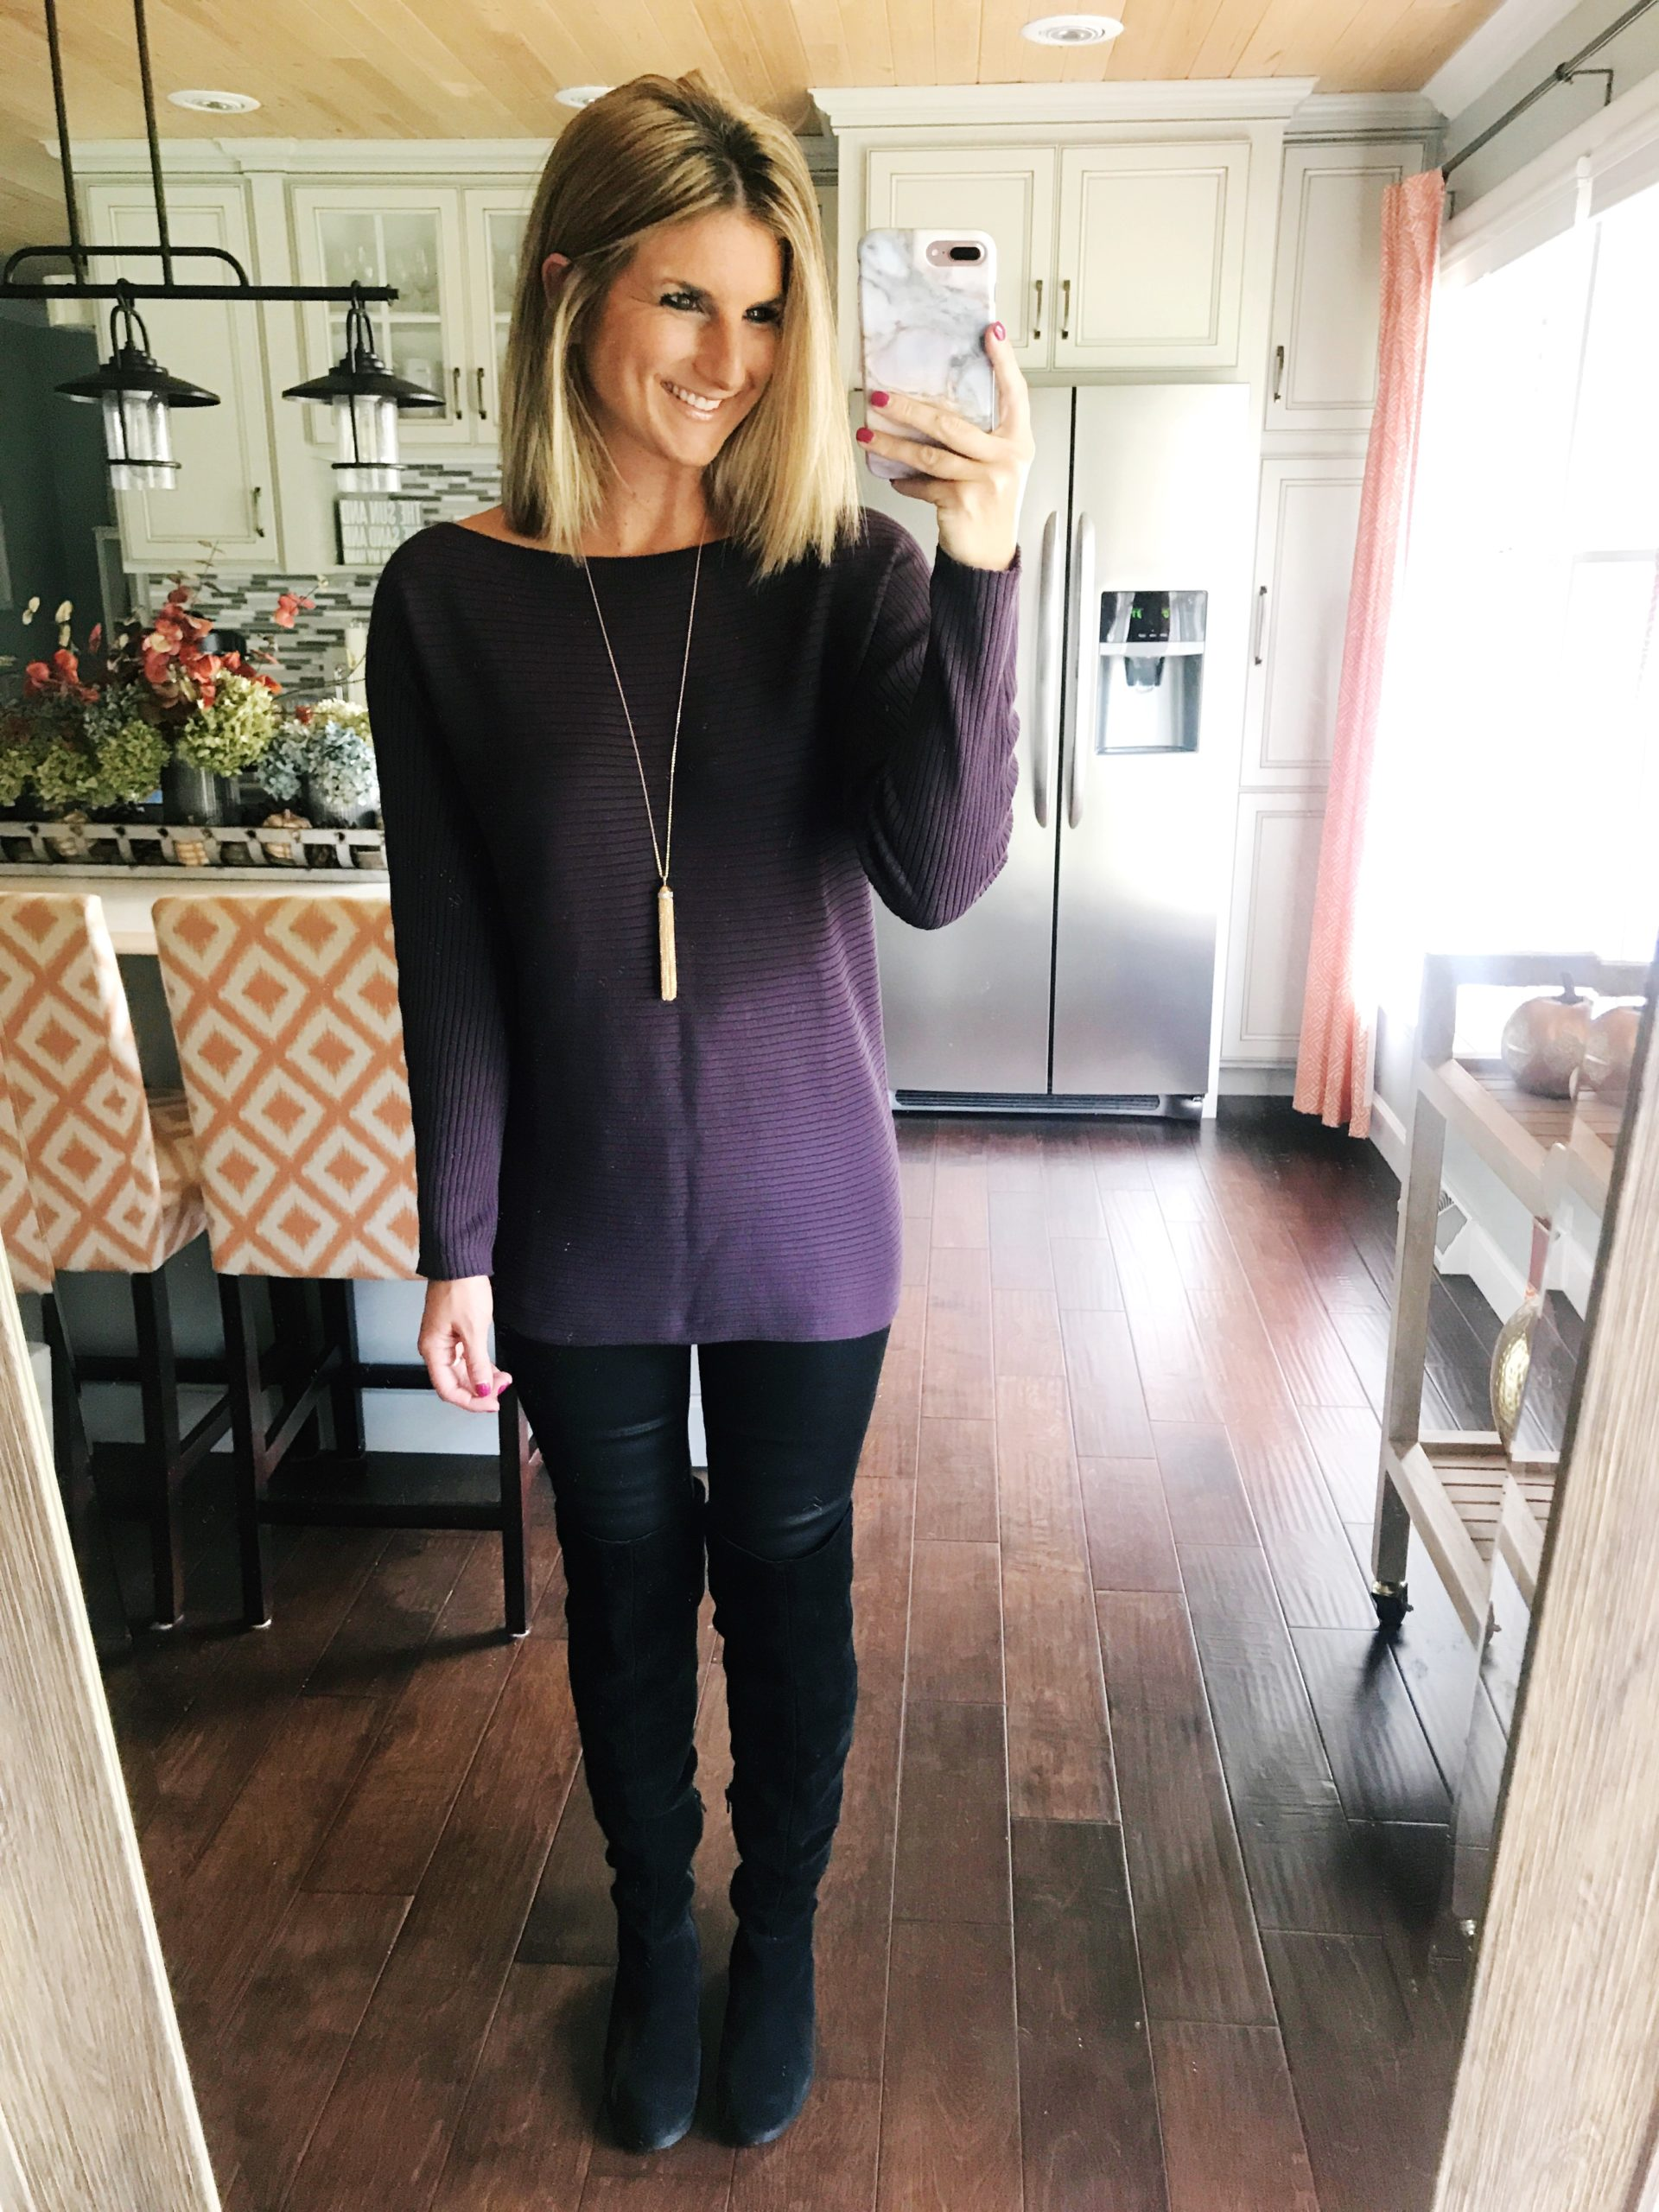 How to Wear Tall Black Boots with Skinny Jeans